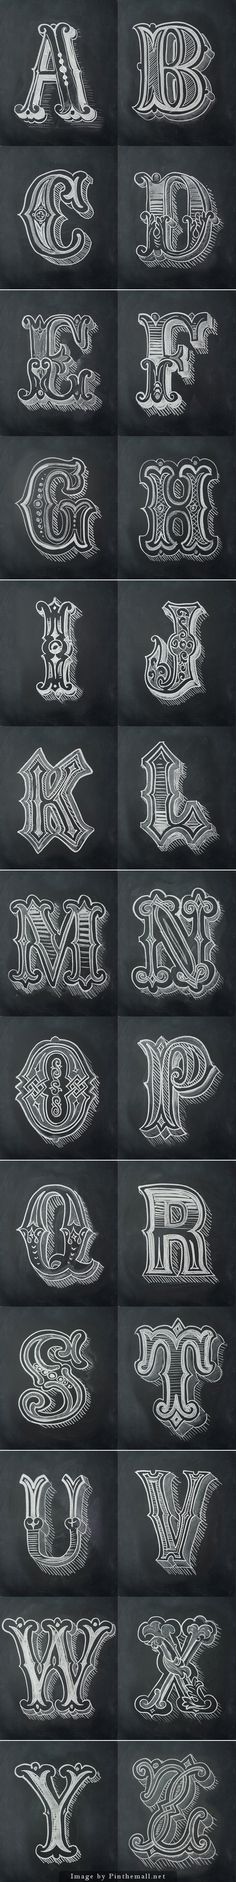 Chalk Alphabet by Antonio Rodrigues Jr. - a grouped images picture - Pin Them. - # Chalk Alphabet by Antonio Rodrigues Jr. - a grouped images picture - Pin Them. Calligraphy Letters, Typography Letters, Typography Design, Typography Poster, Learn Calligraphy, Fancy Lettering Alphabet, Letter Fonts, Typography Alphabet, Fancy Letters